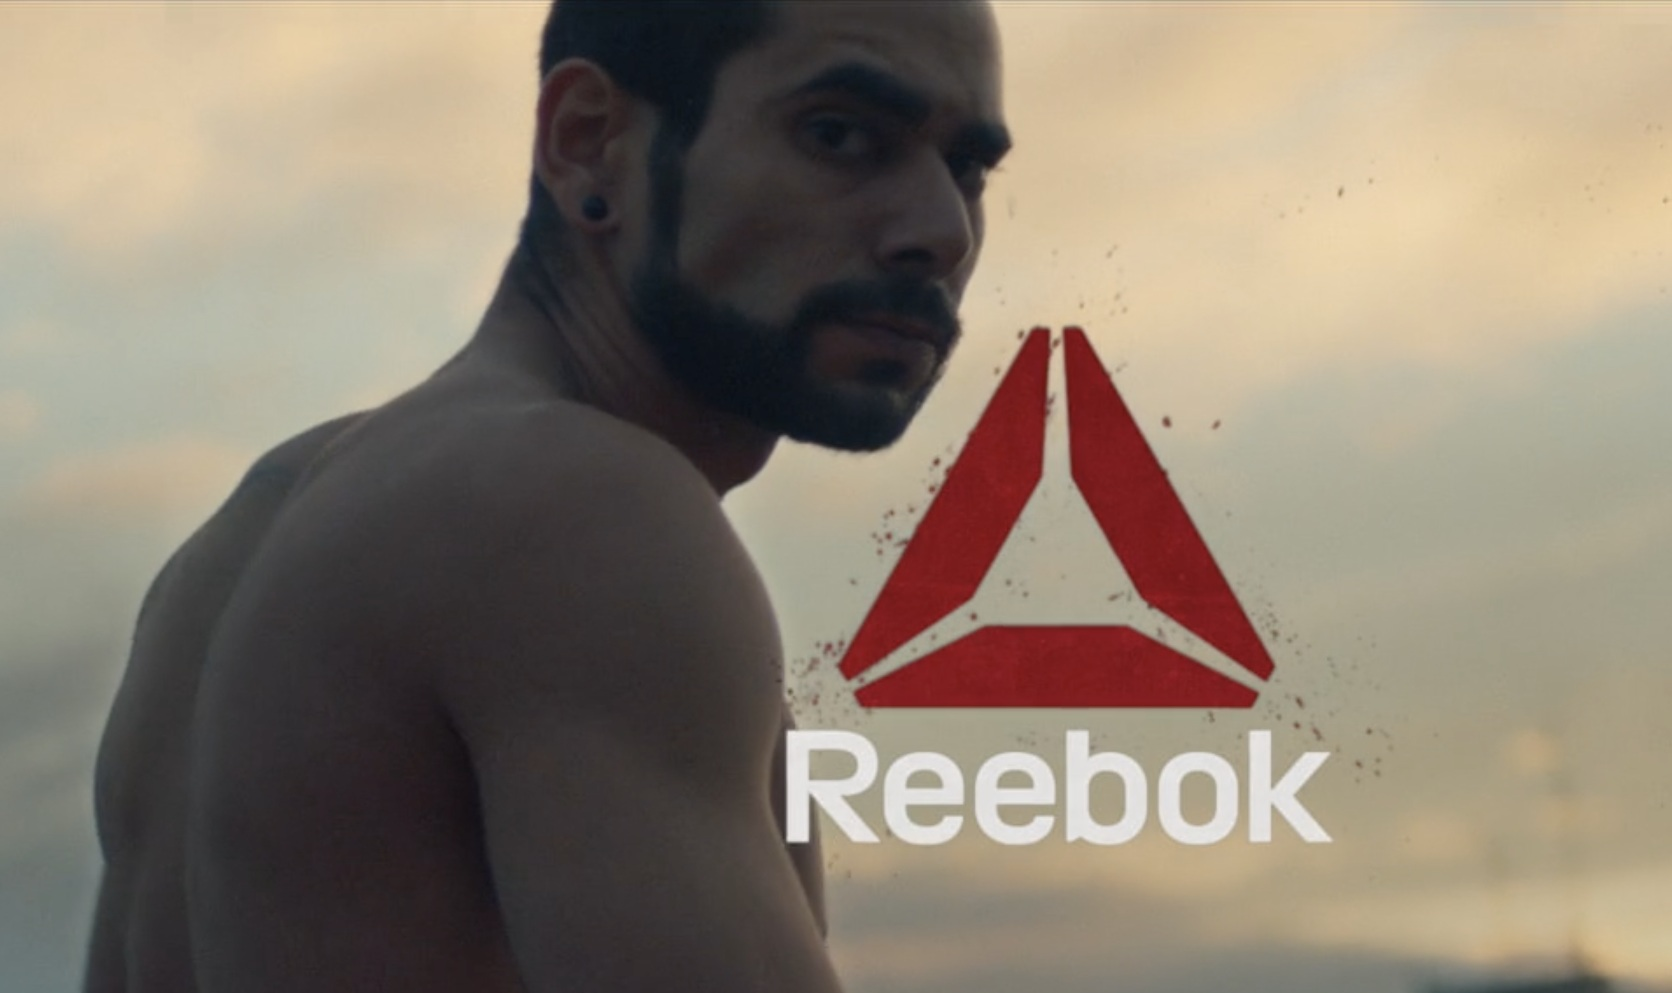 Reebok Hands Rivvrs Walk in the Wild Rick Seibold.png